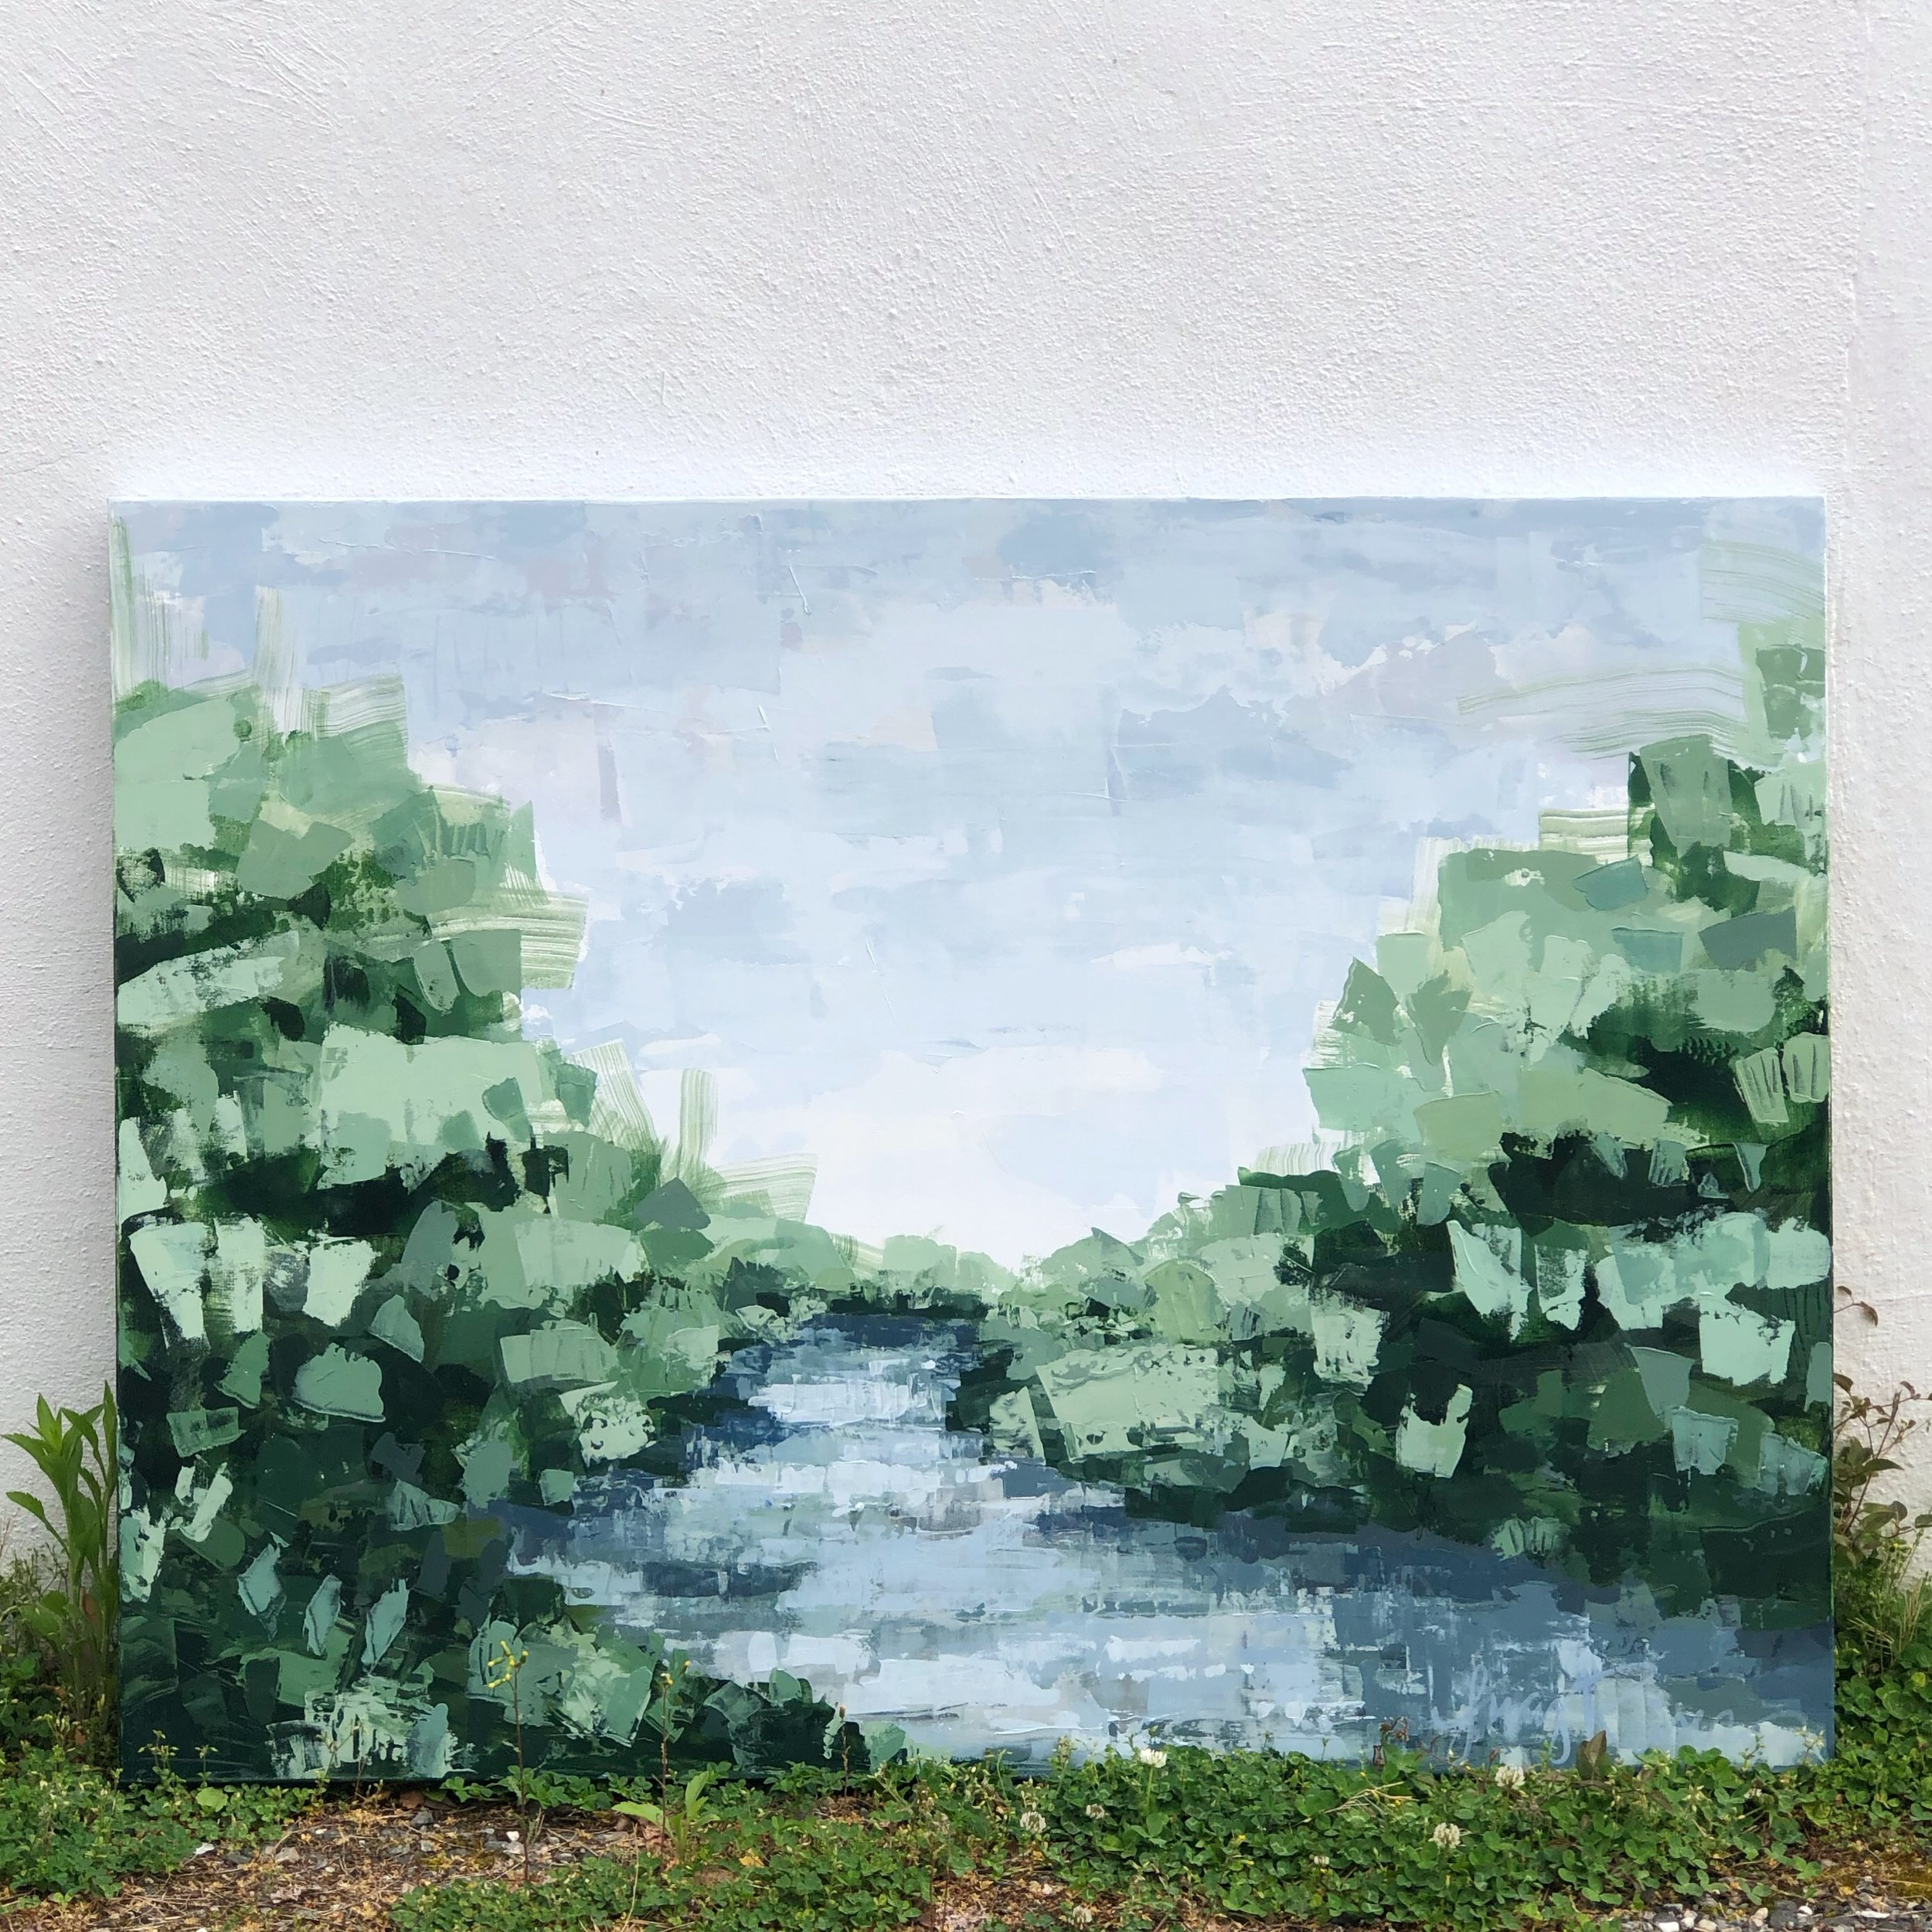 Sent off this river commission to her new home!